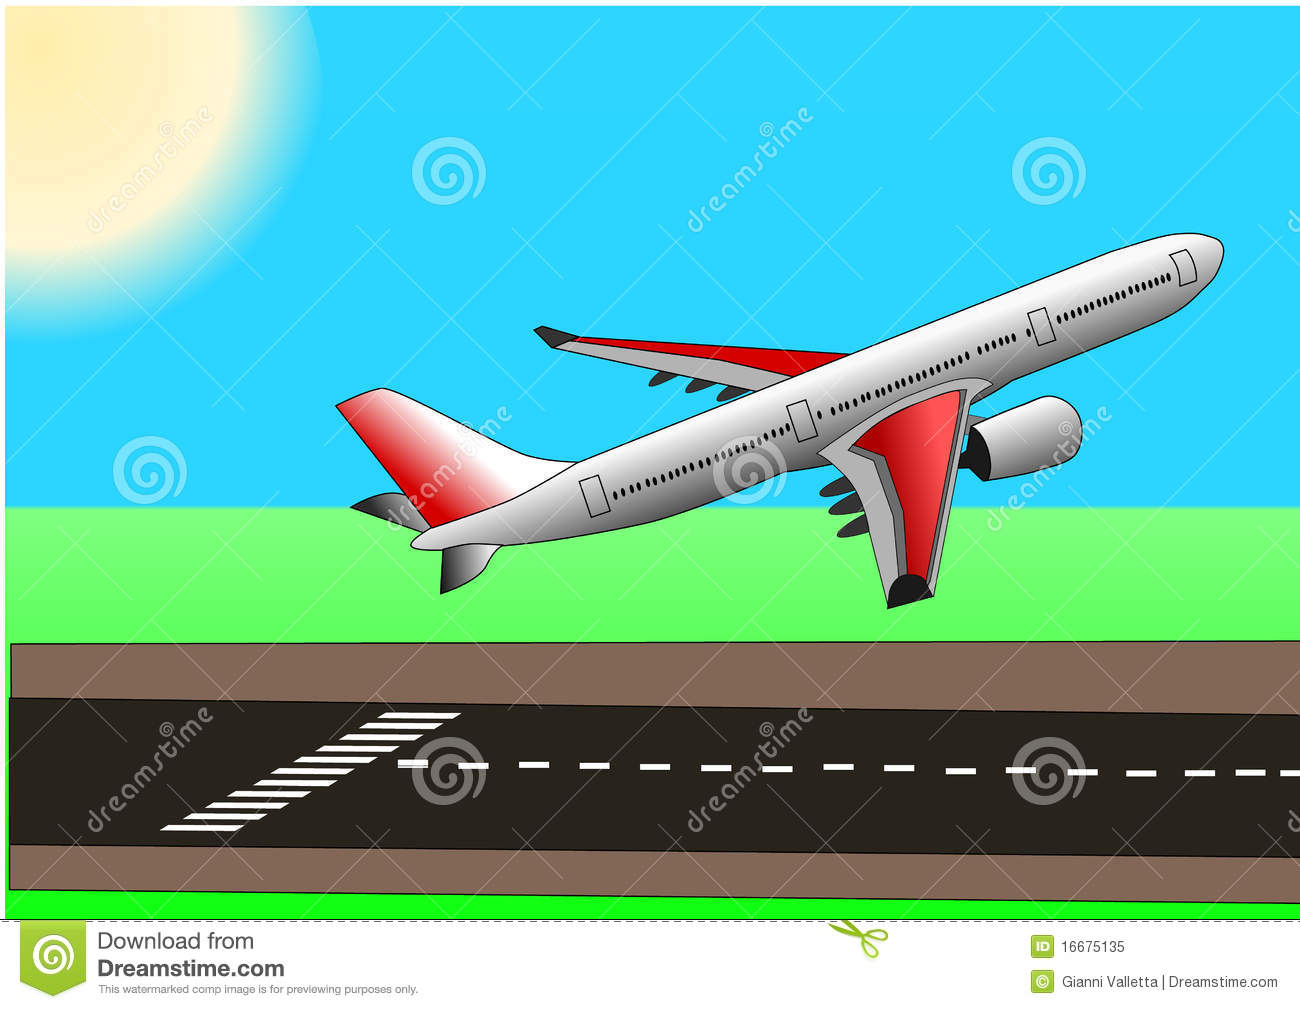 plane takeoff images with Royalty Free Stock Photo Illstration Vector Plane Airbus Taking Off Image16675135 on Cc 138 besides Airbus A320 together with Royalty Free Stock Photo Illstration Vector Plane Airbus Taking Off Image16675135 additionally Watch likewise Propeller Aerodynamics.